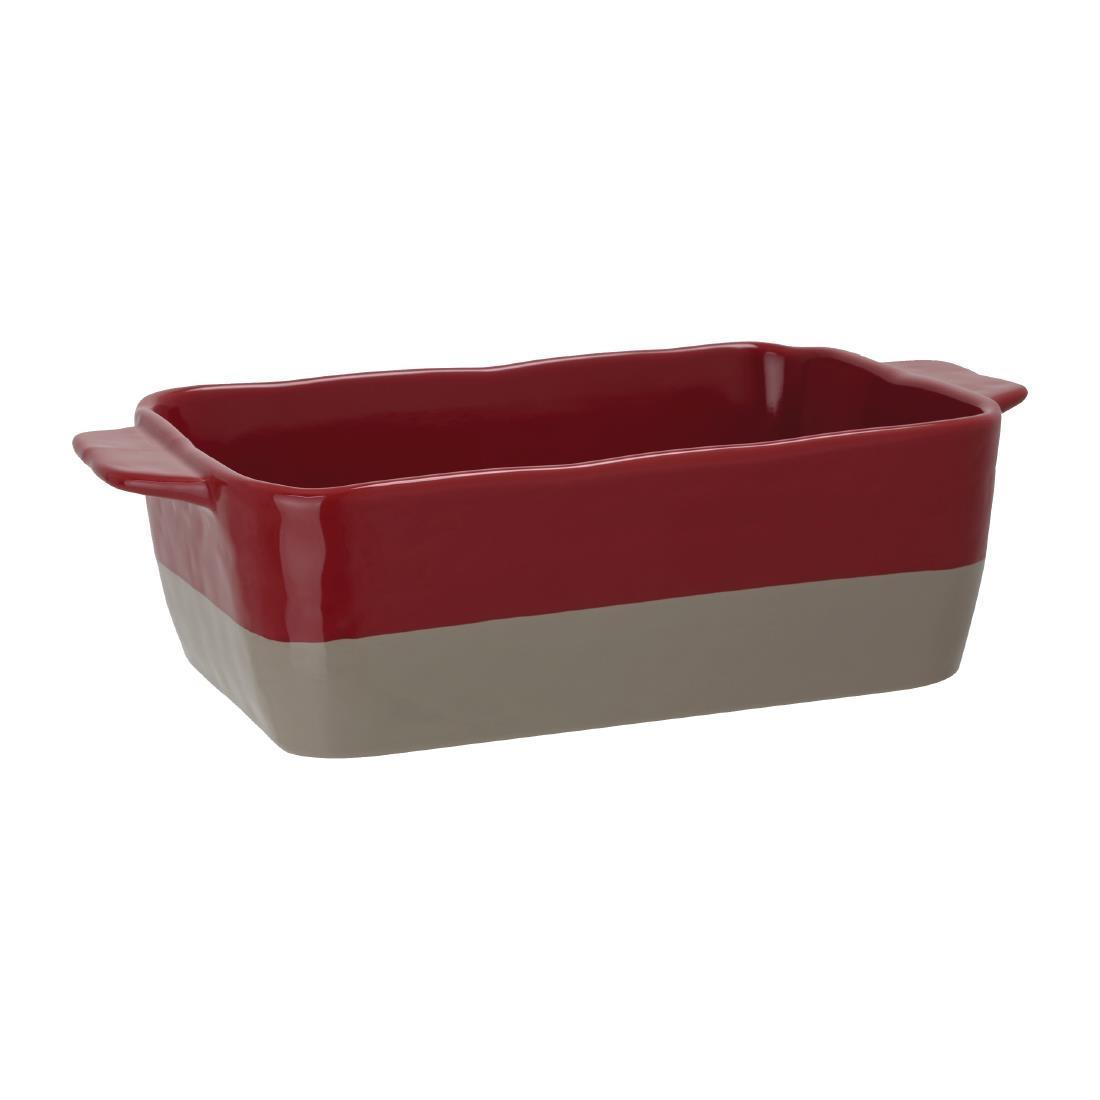 Olympia Red And Taupe Ceramic Roasting Dish ???GN